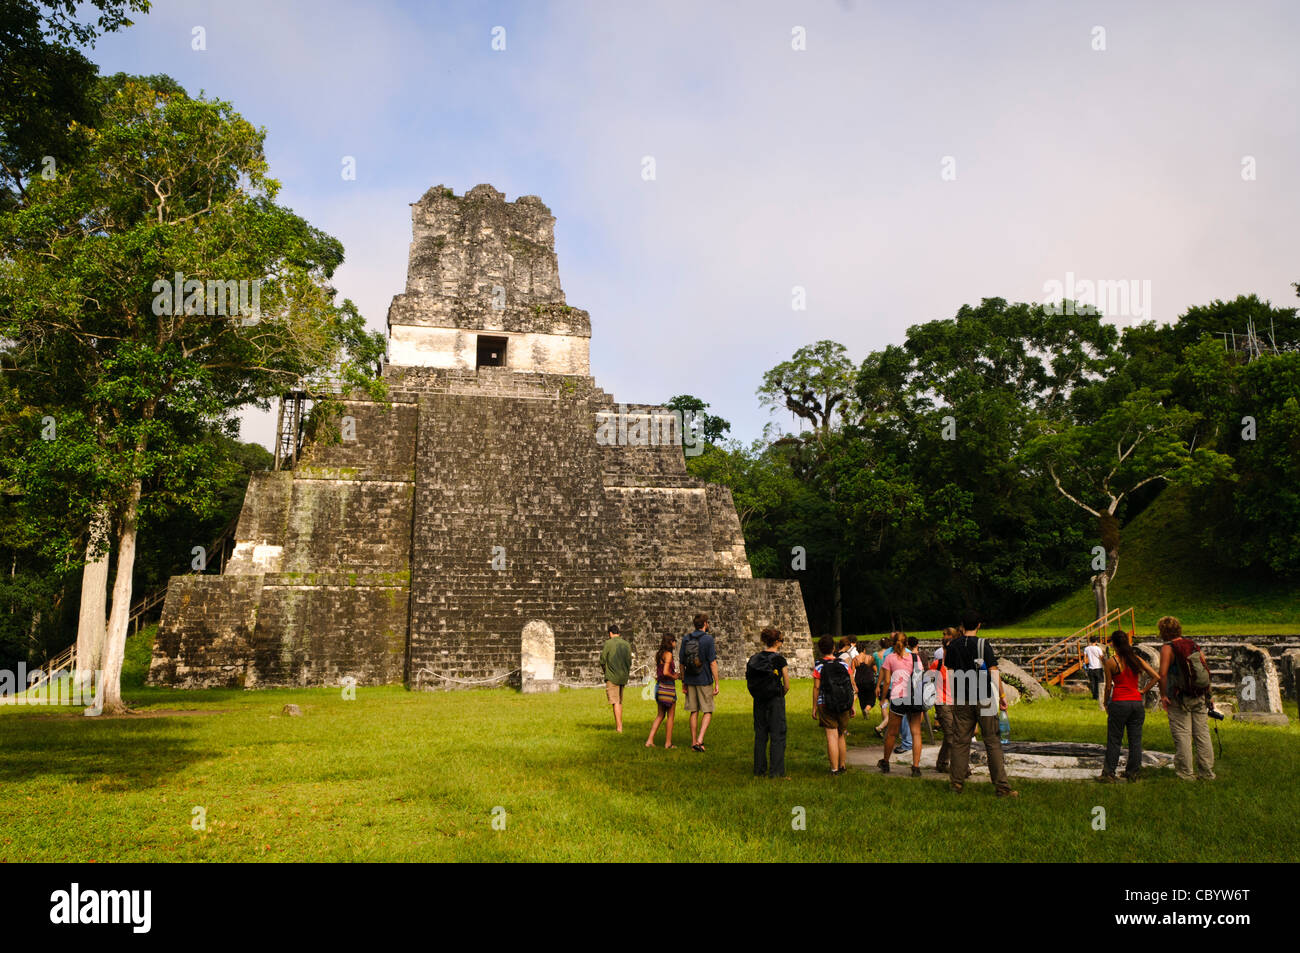 TIKAL, Guatemala - A group of tourists in the Main Plaza in front of the Temple of the Masks, or Temple 2, in the - Stock Image